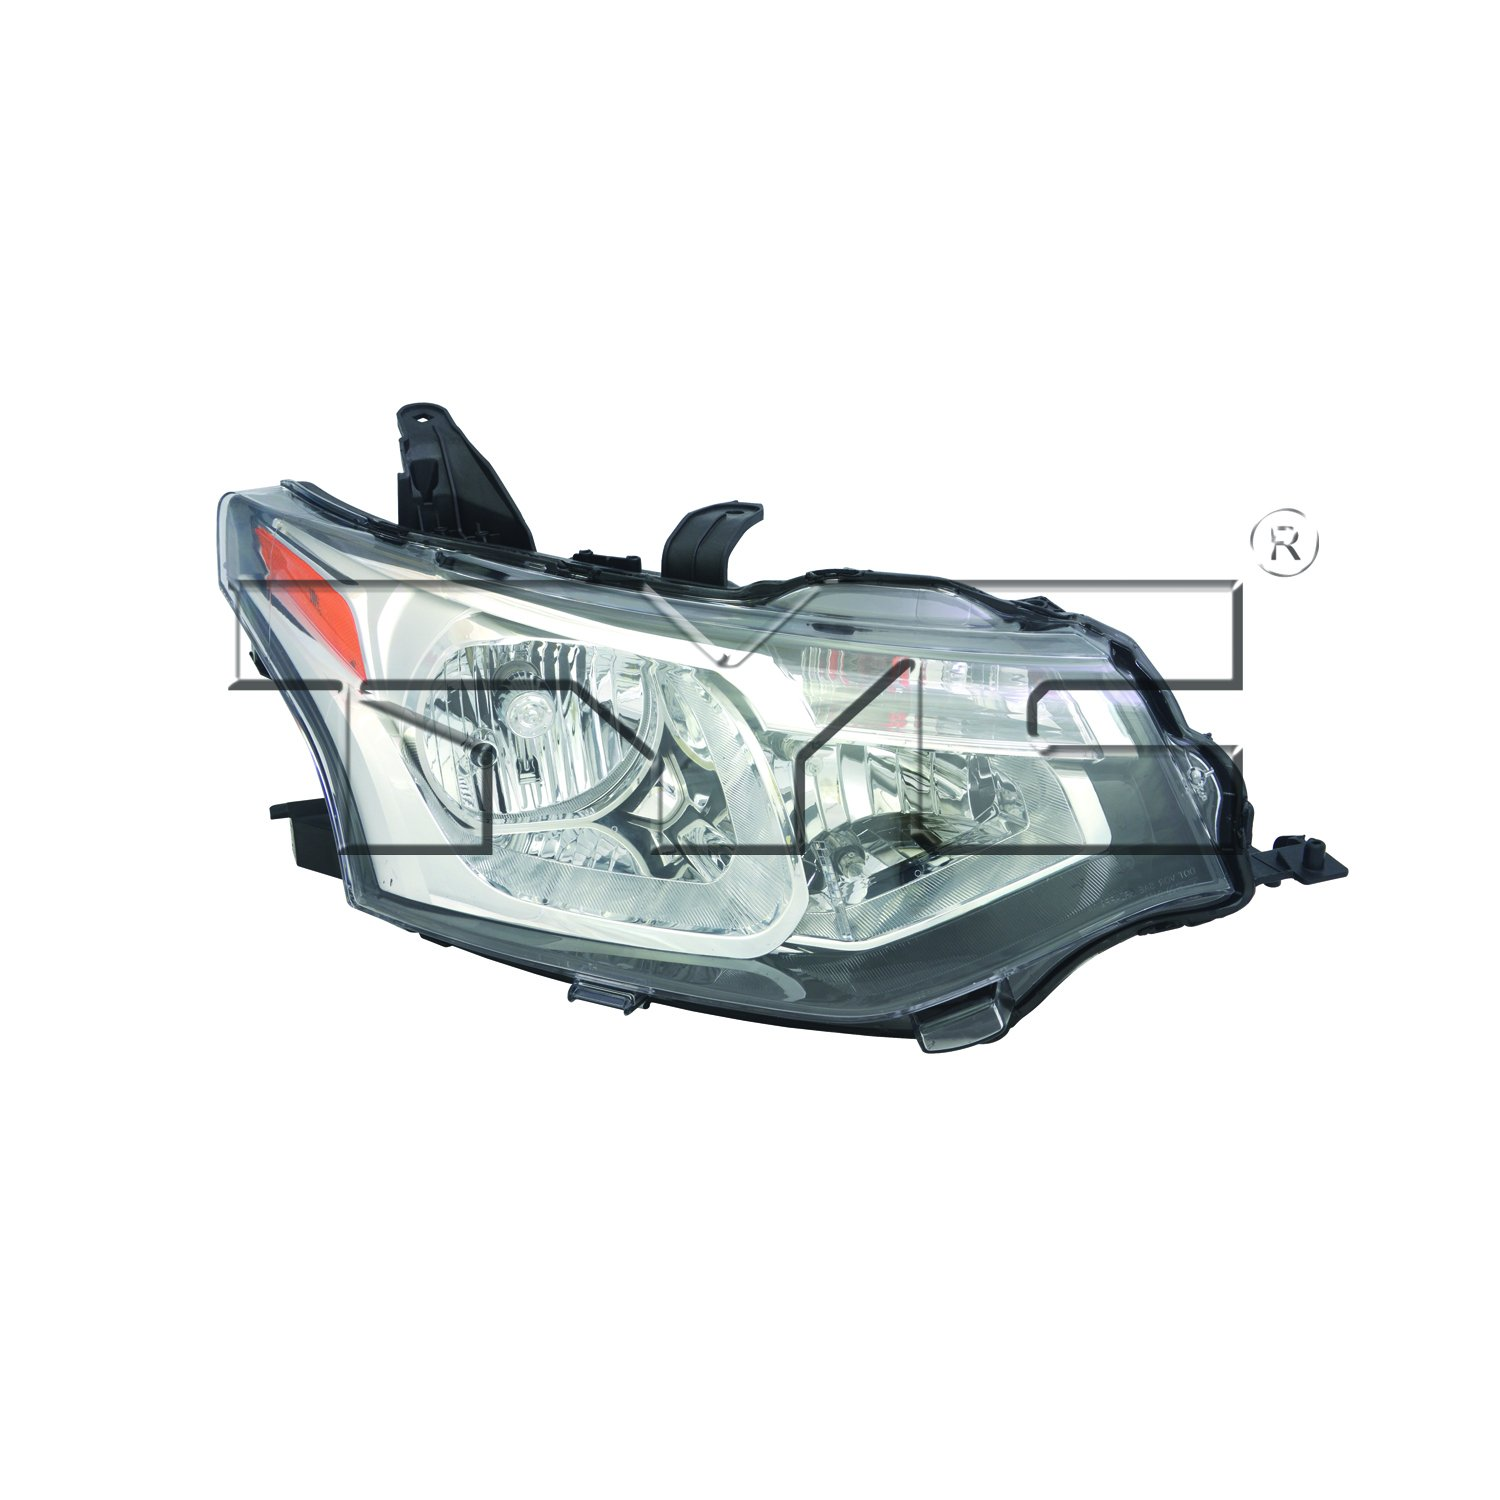 TYC 20-9488-00-1 Mitsubishi Outlander Left Replacement Head Lamp